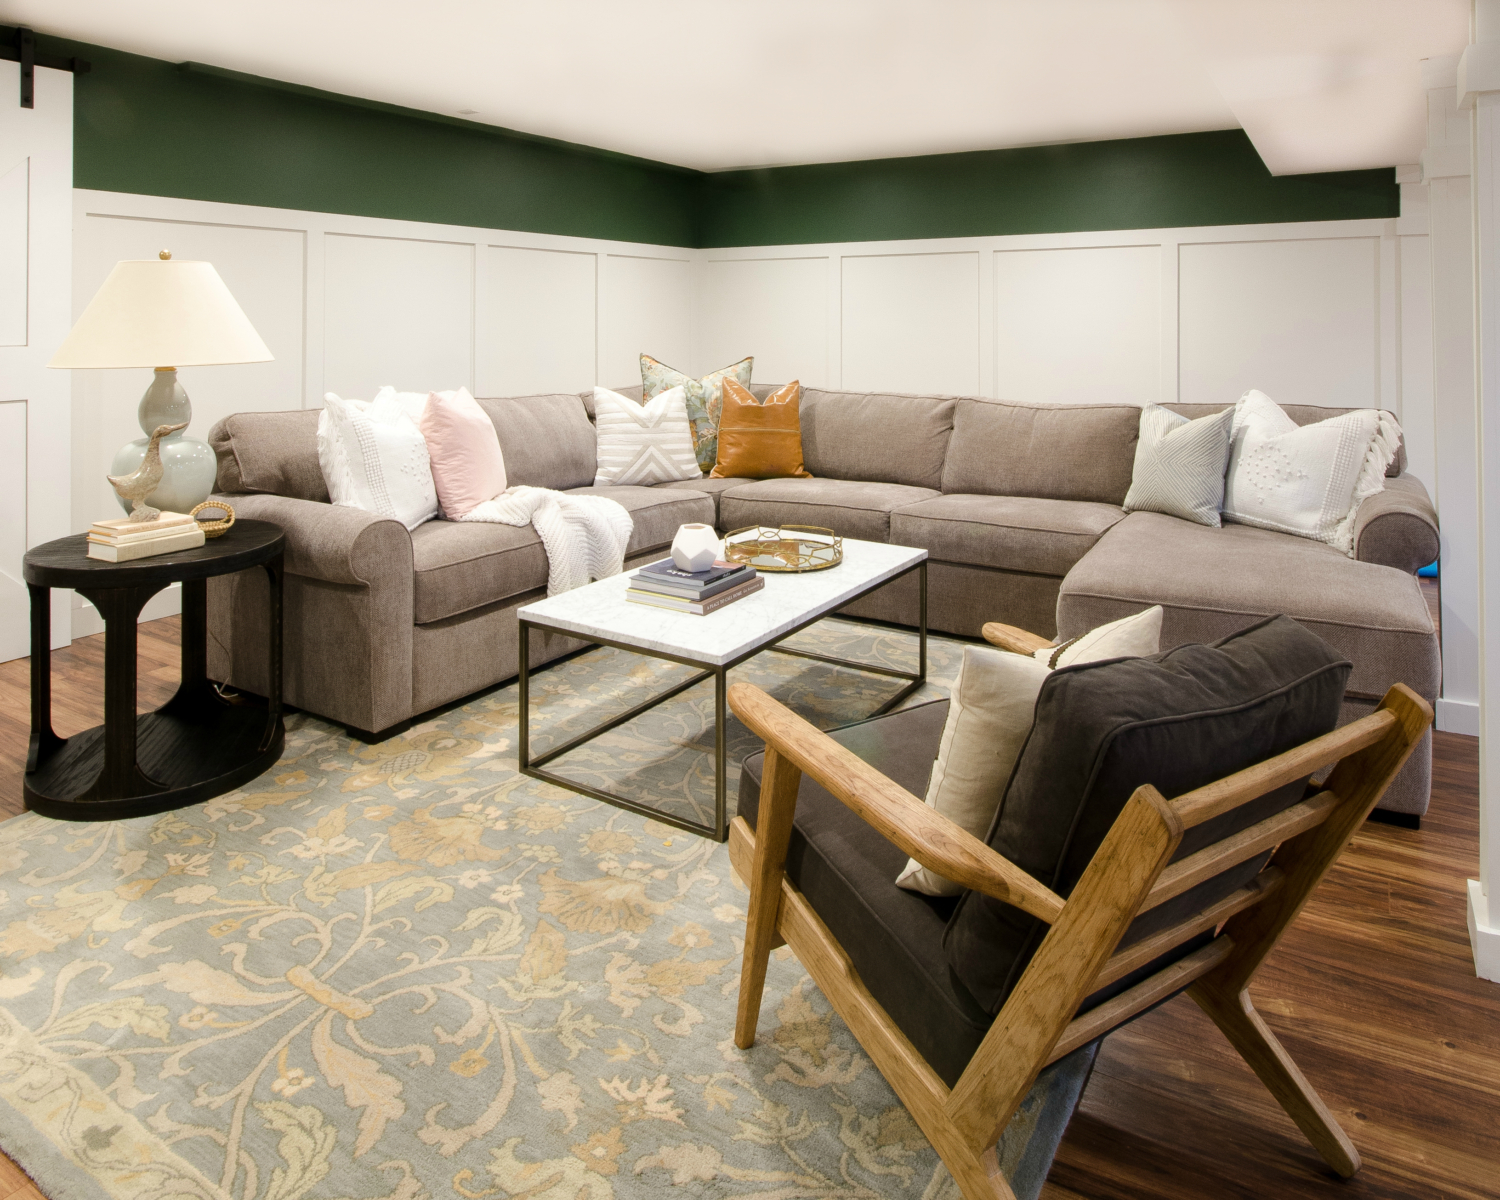 Finished basement family room sources for this space that perfectly marries style and family-friendly